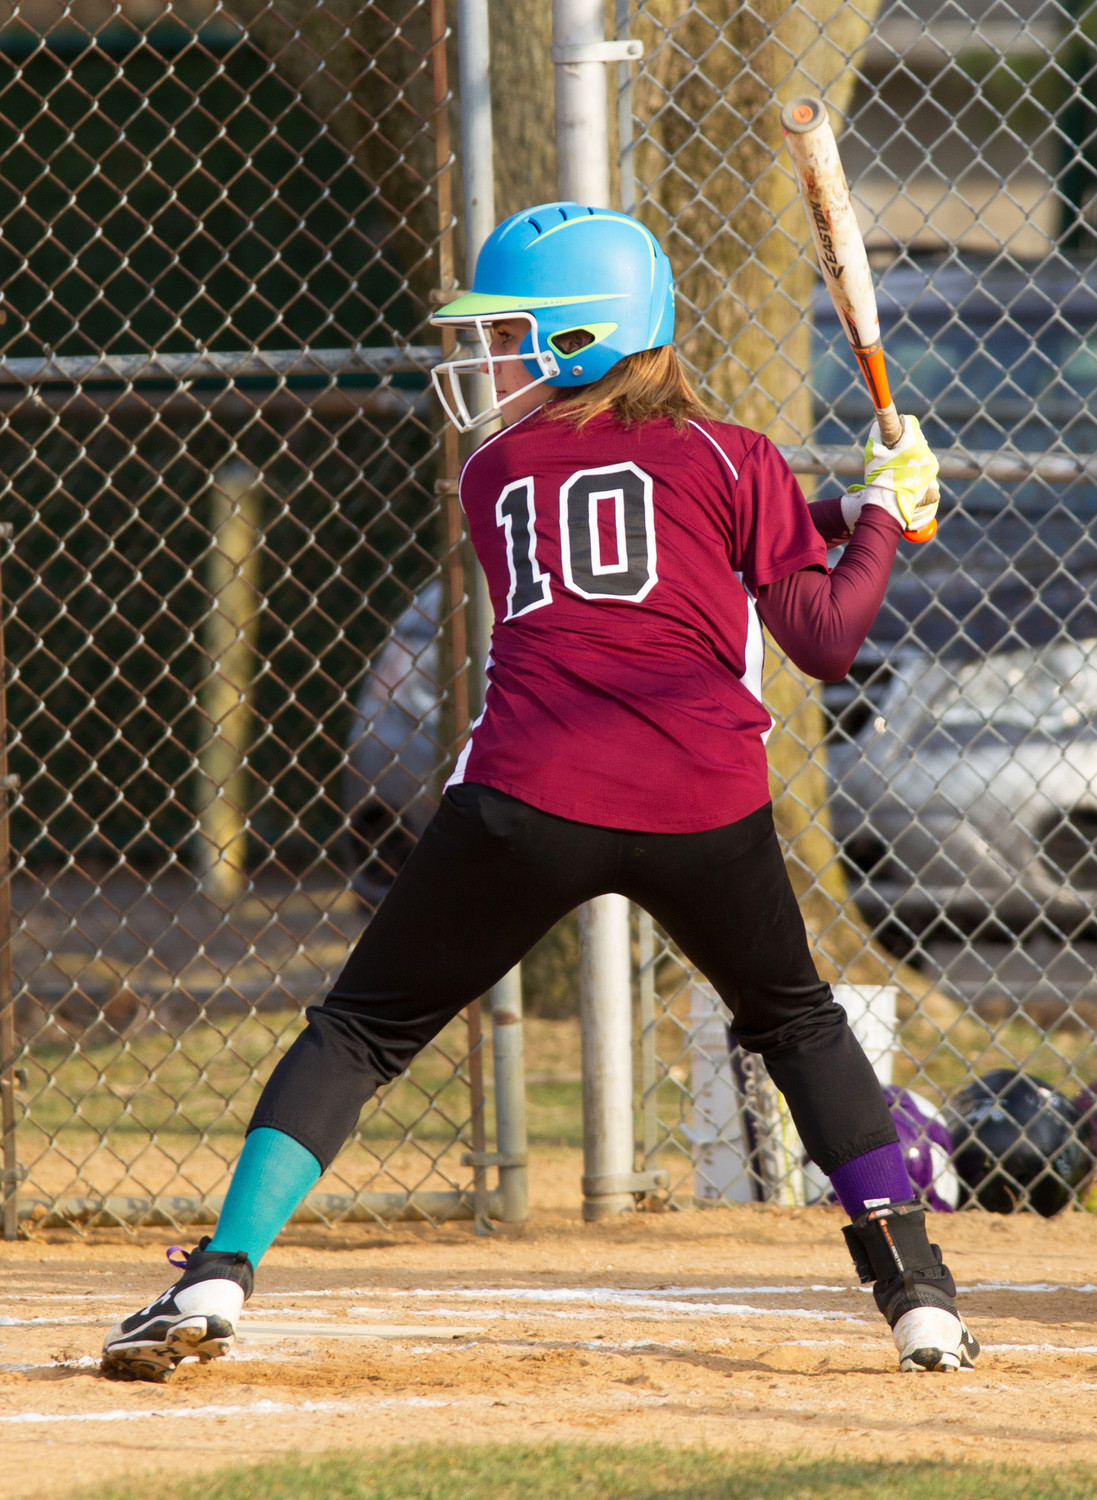 Junior Taylor Berry had a 4-for-4 performance April 21, homering, scoring four runs and driving in three to lead the Lady Vikings to a 16-10 win over Jericho.